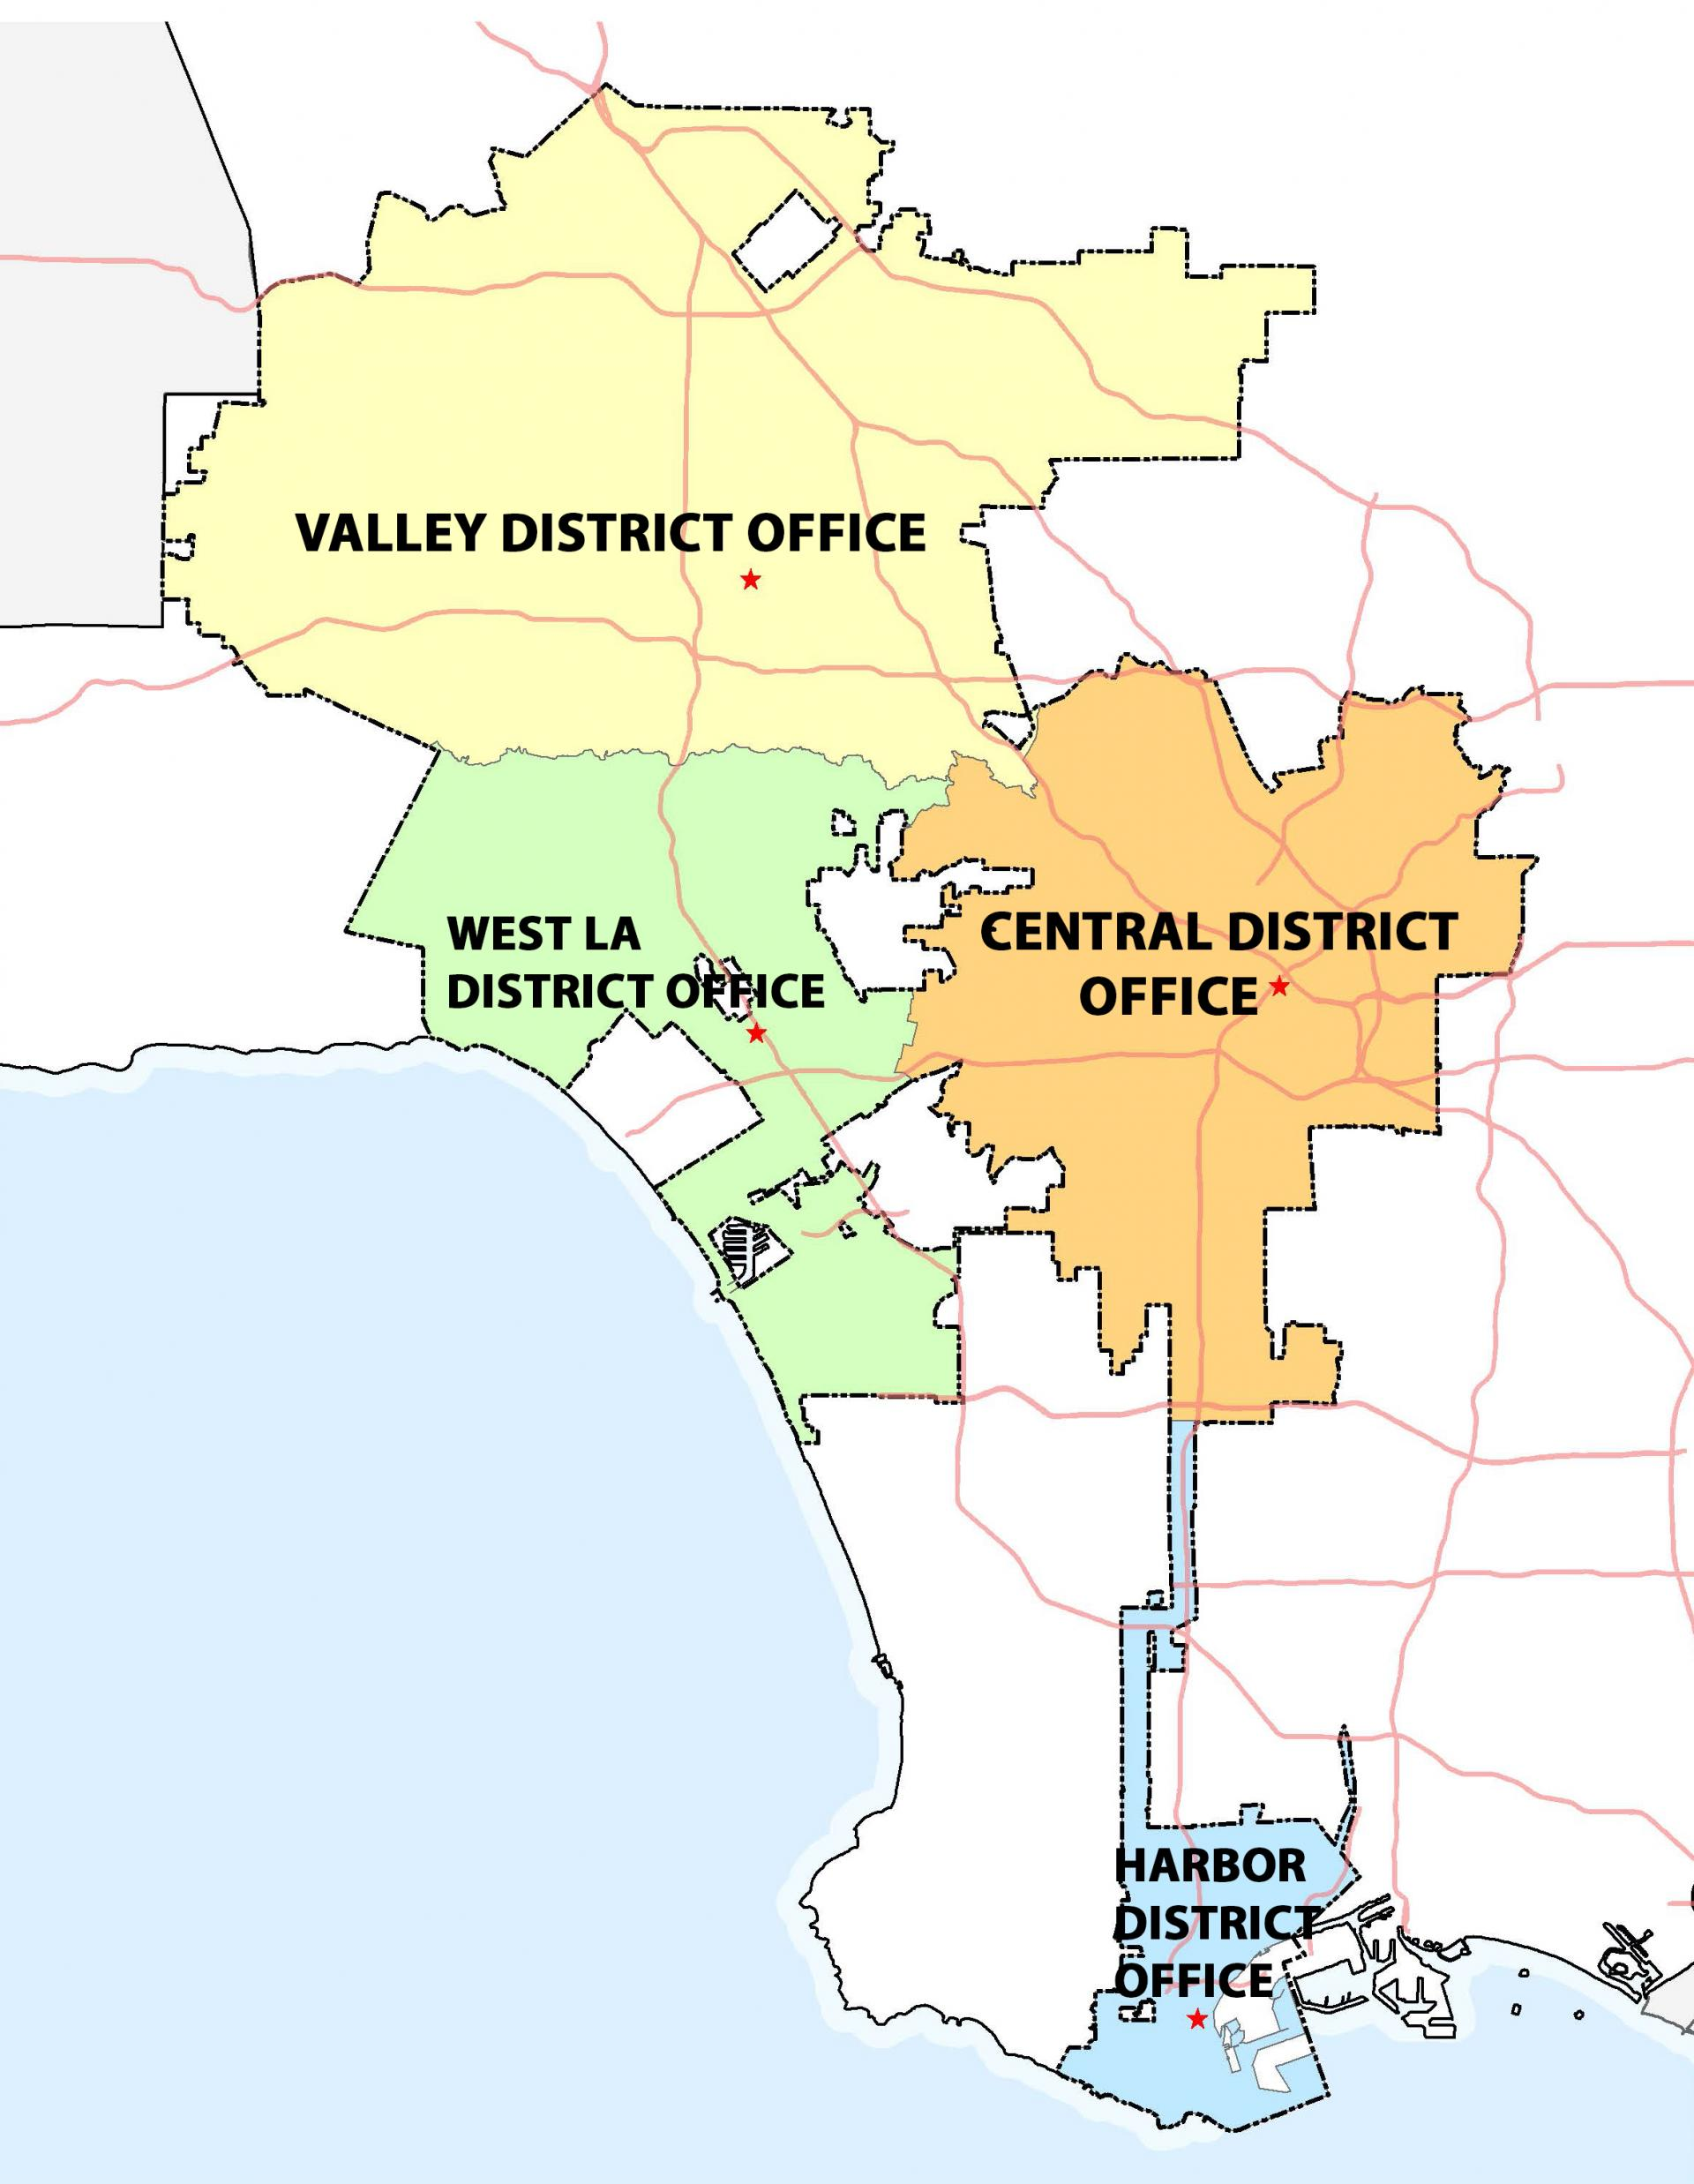 Engineering District Office Locations Map